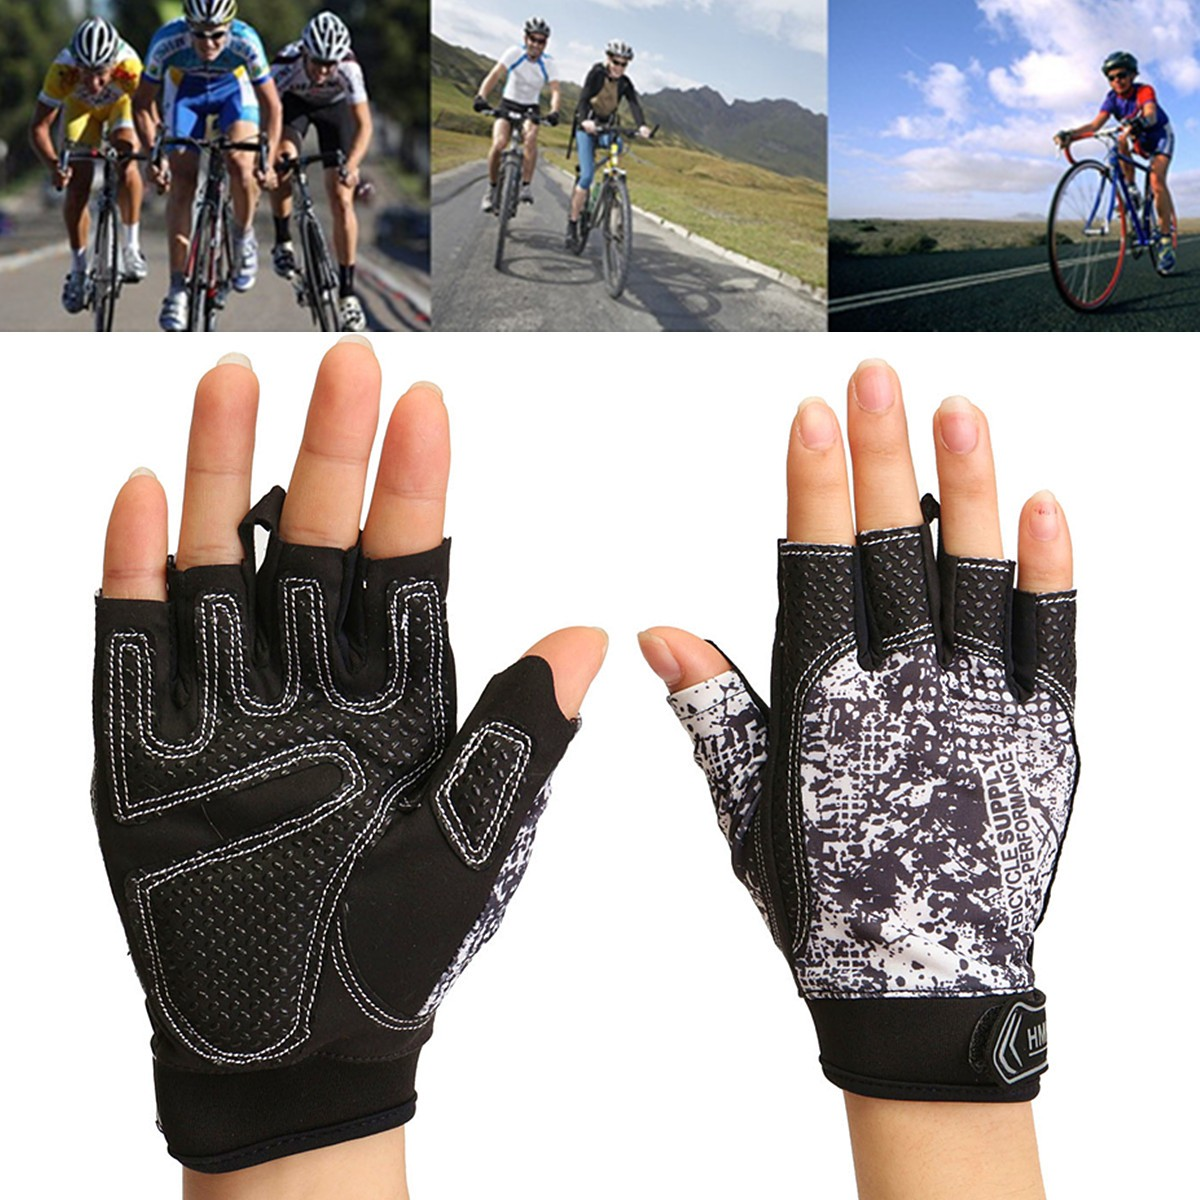 Half Finger Gloves Motorcycle Bike Cycling Camouflage Fingerless Sports Outdoor